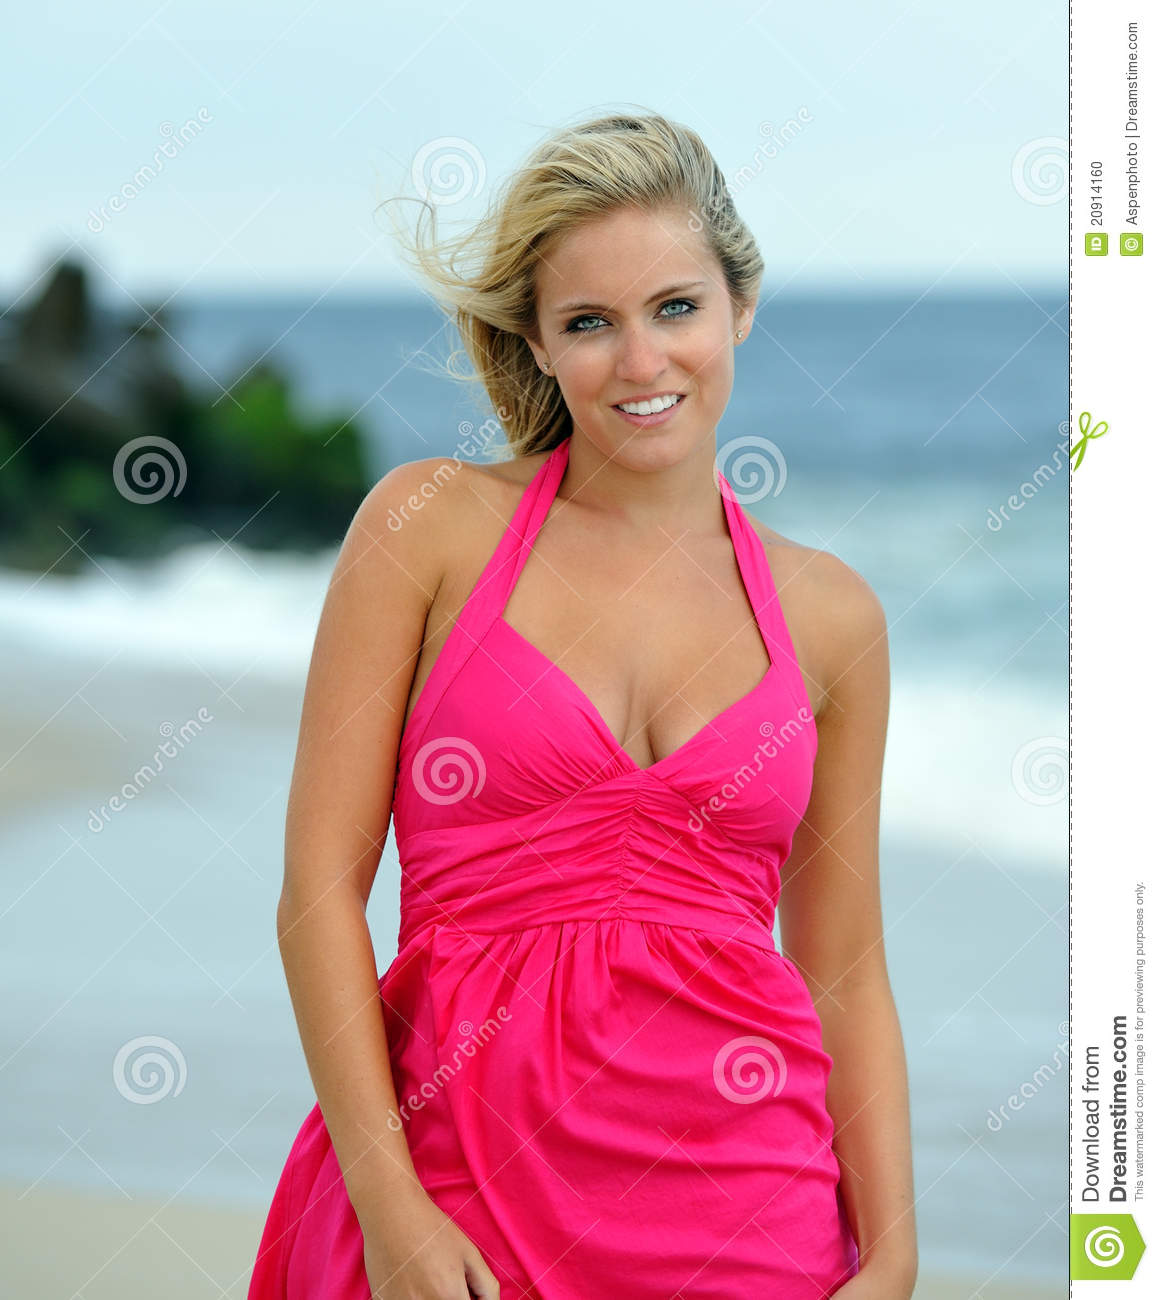 Stunning Young Blonde Woman Walking On The Beach Stock